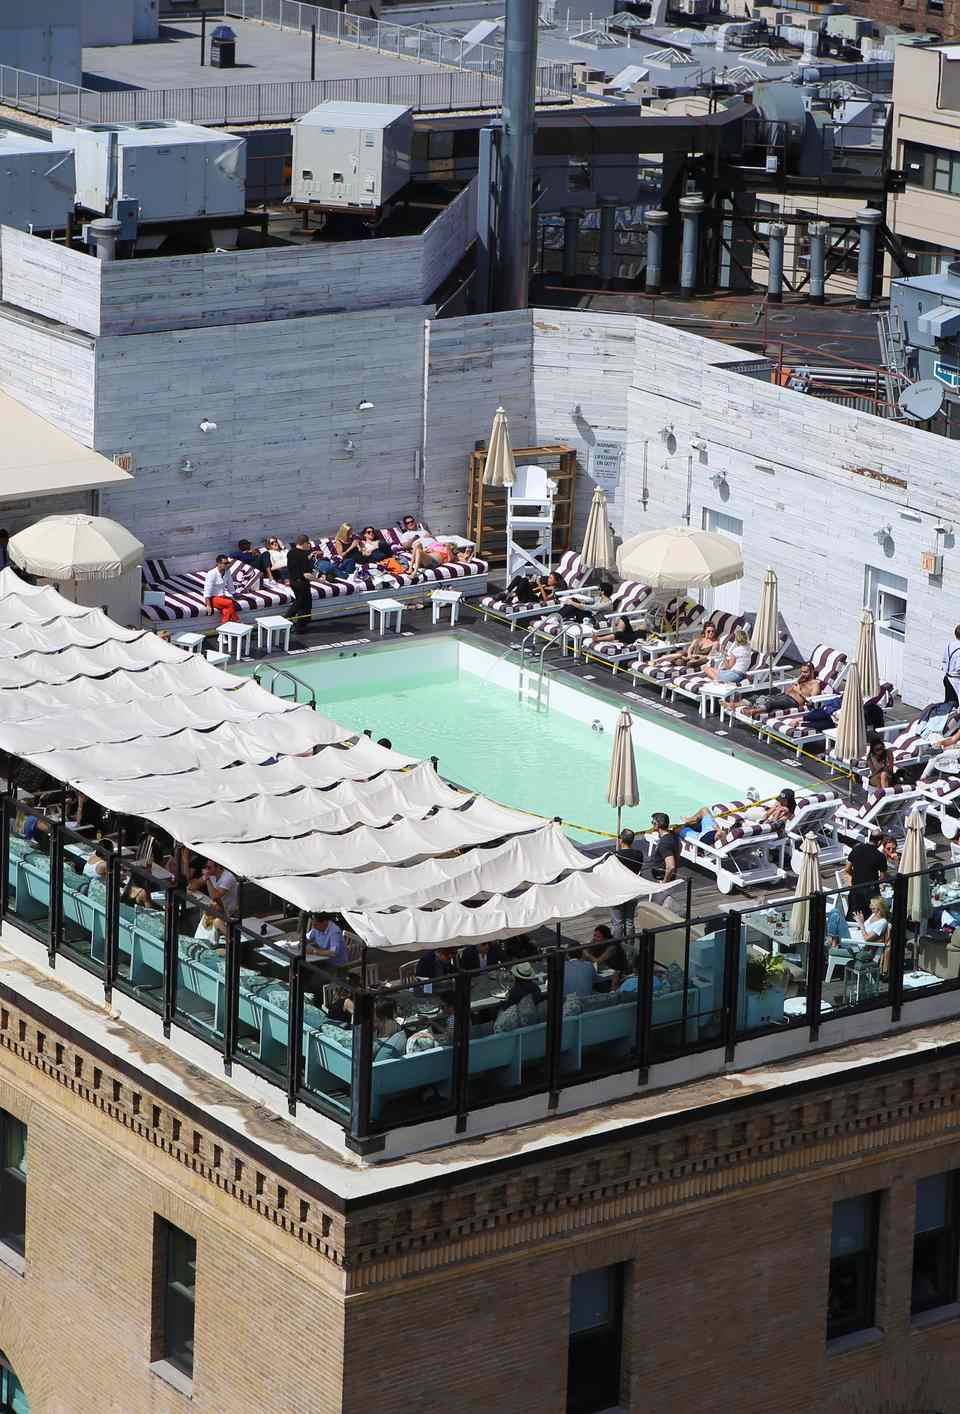 Bird's eye view of the rooftop pool of the Soho House New York, on 9th Avenue in the Meatpacking District, Manhattan, New York City